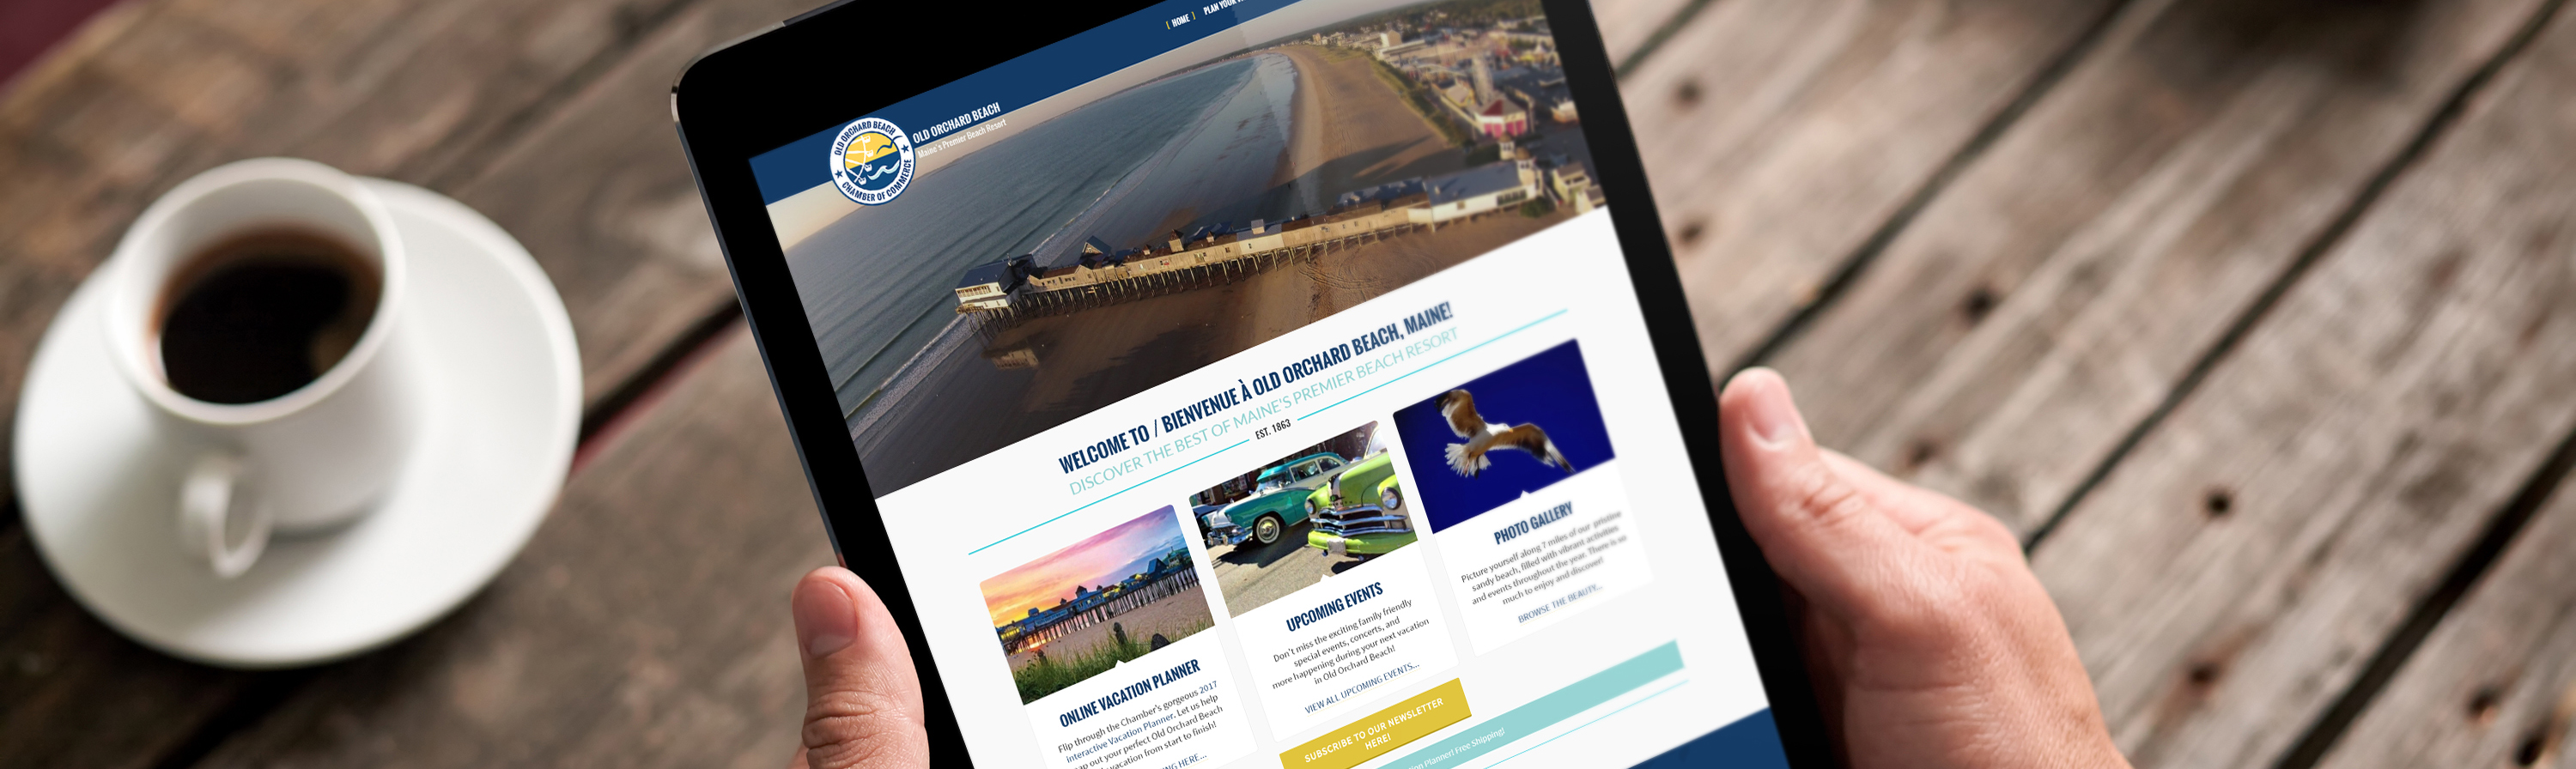 old orchard beach chgamber of commerce online payments